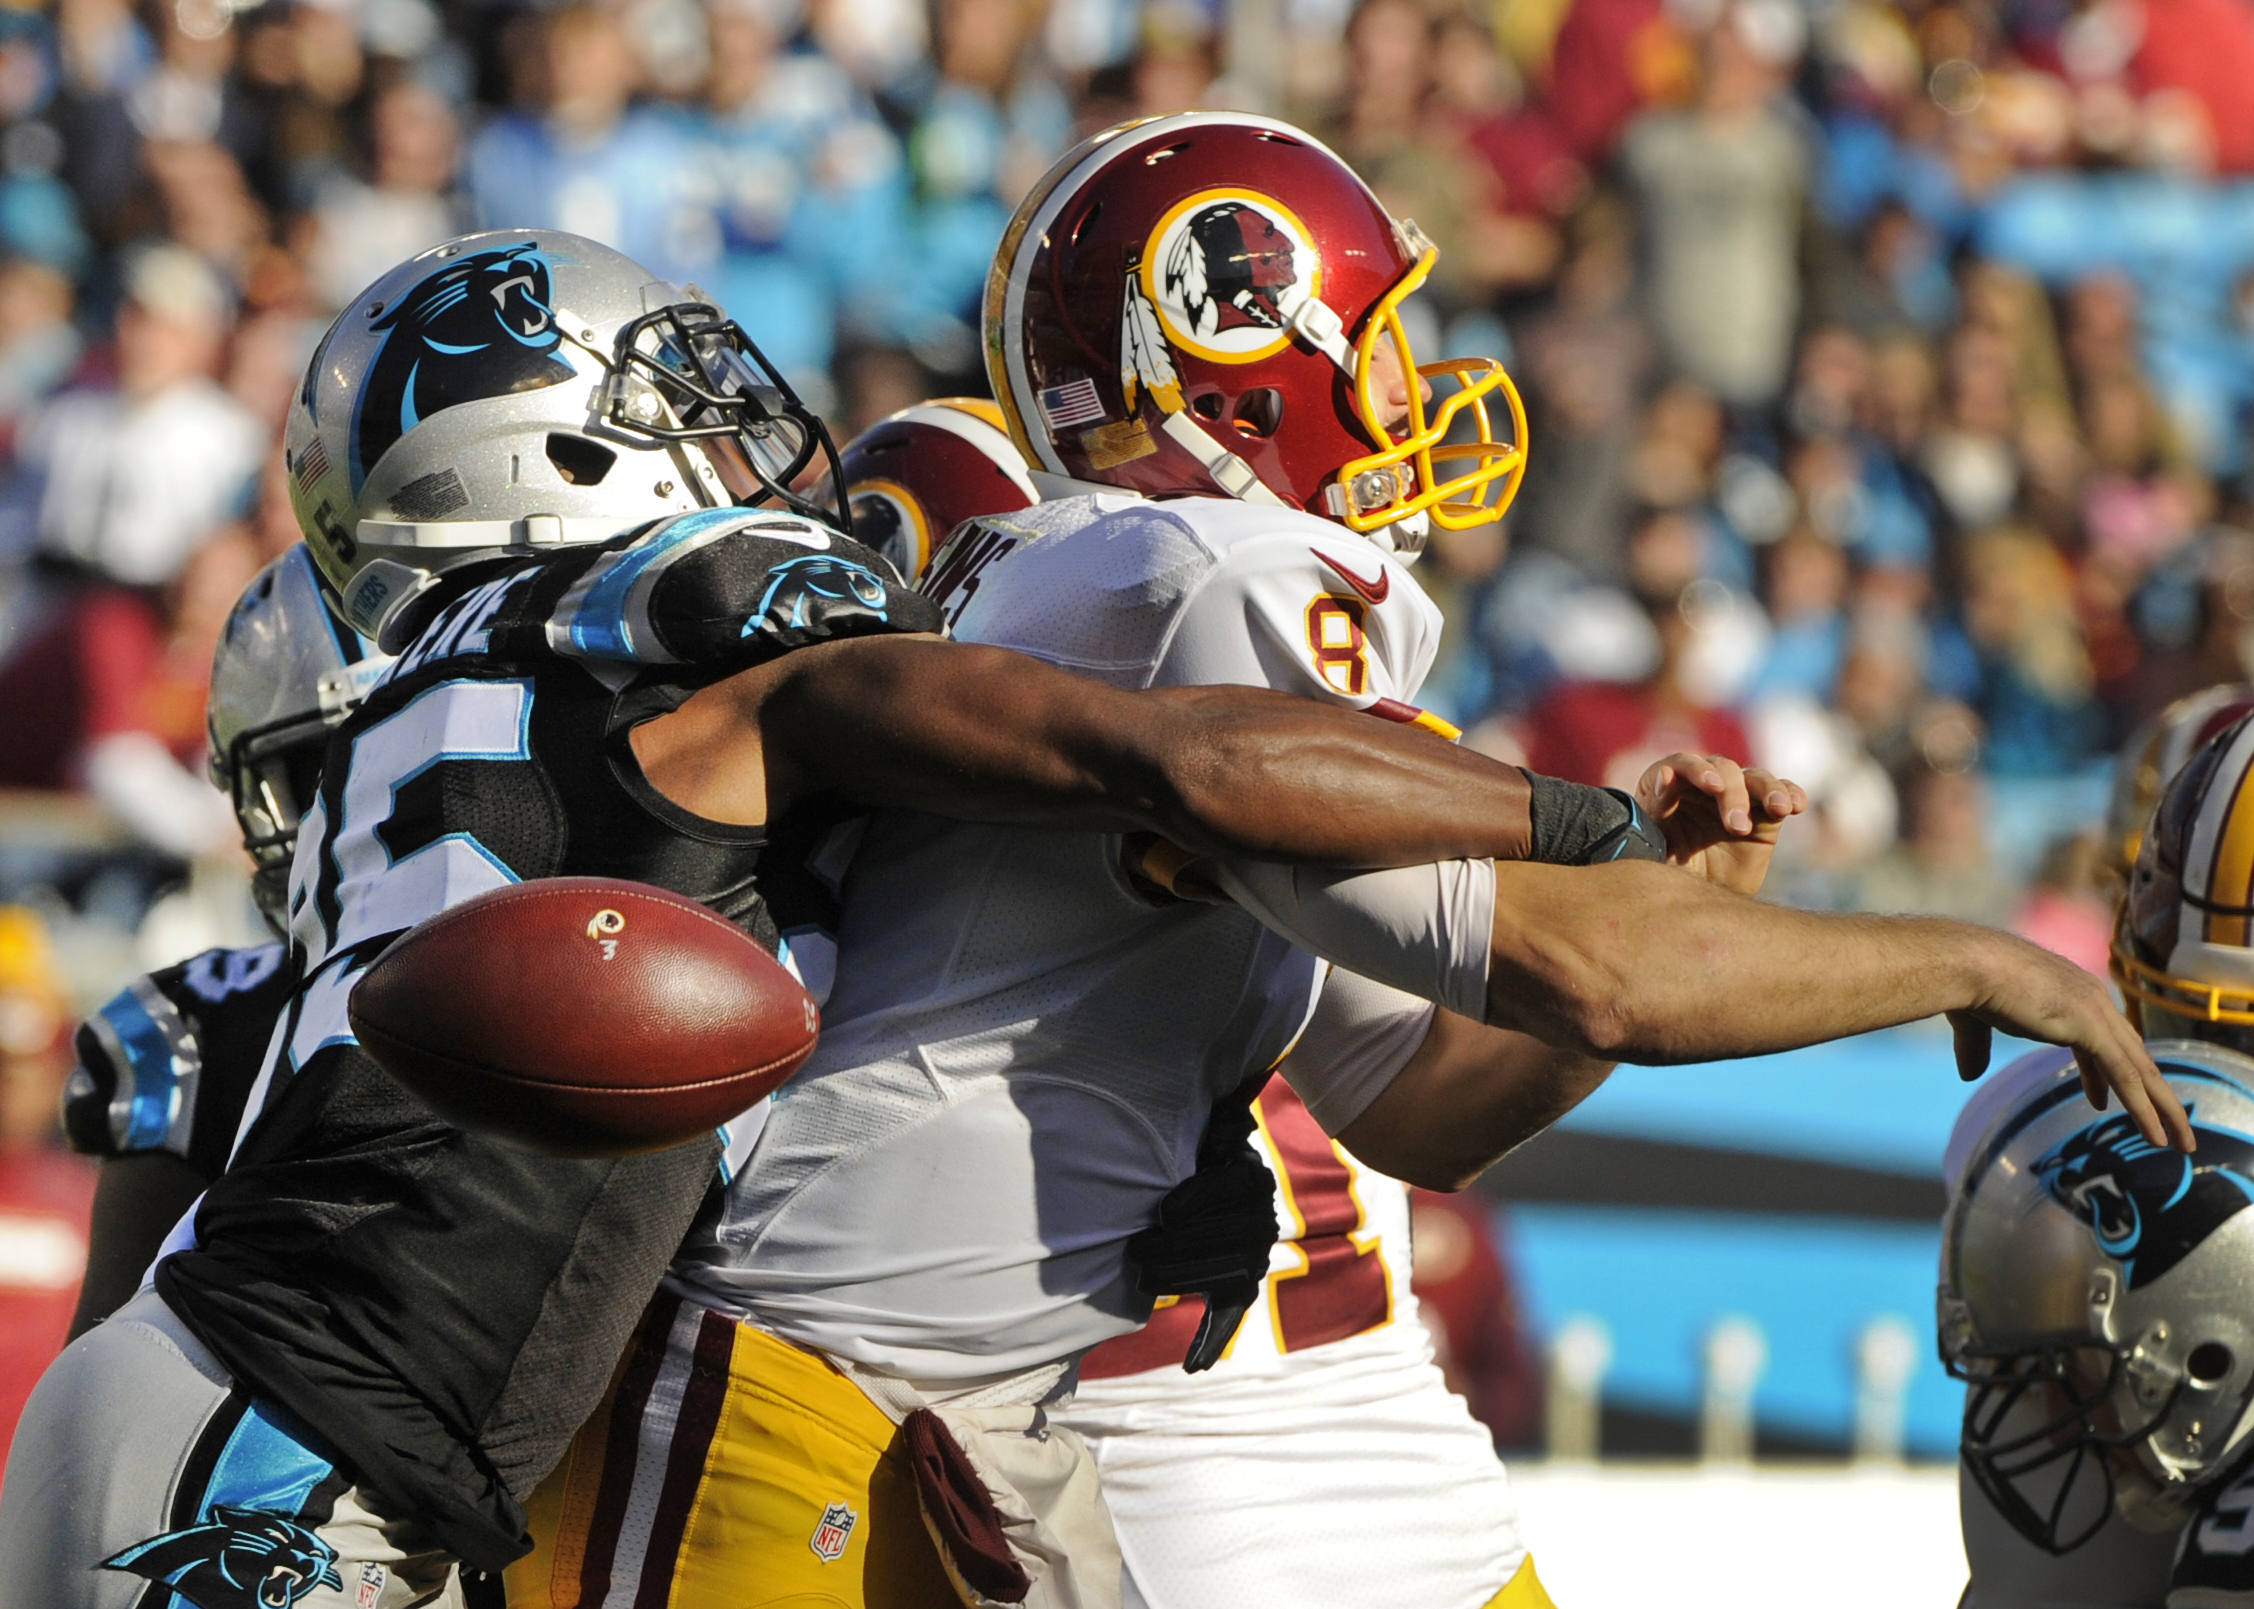 FILE - In this Nov. 22, 2015, file photo, Washington Redskins' Kirk Cousins, right, fumbles the ball as he is hit by Carolina Panthers' Bene' Benwikere, left, in the second half of an NFL football game in Charlotte, N.C. The Panthers recovered the ball. A